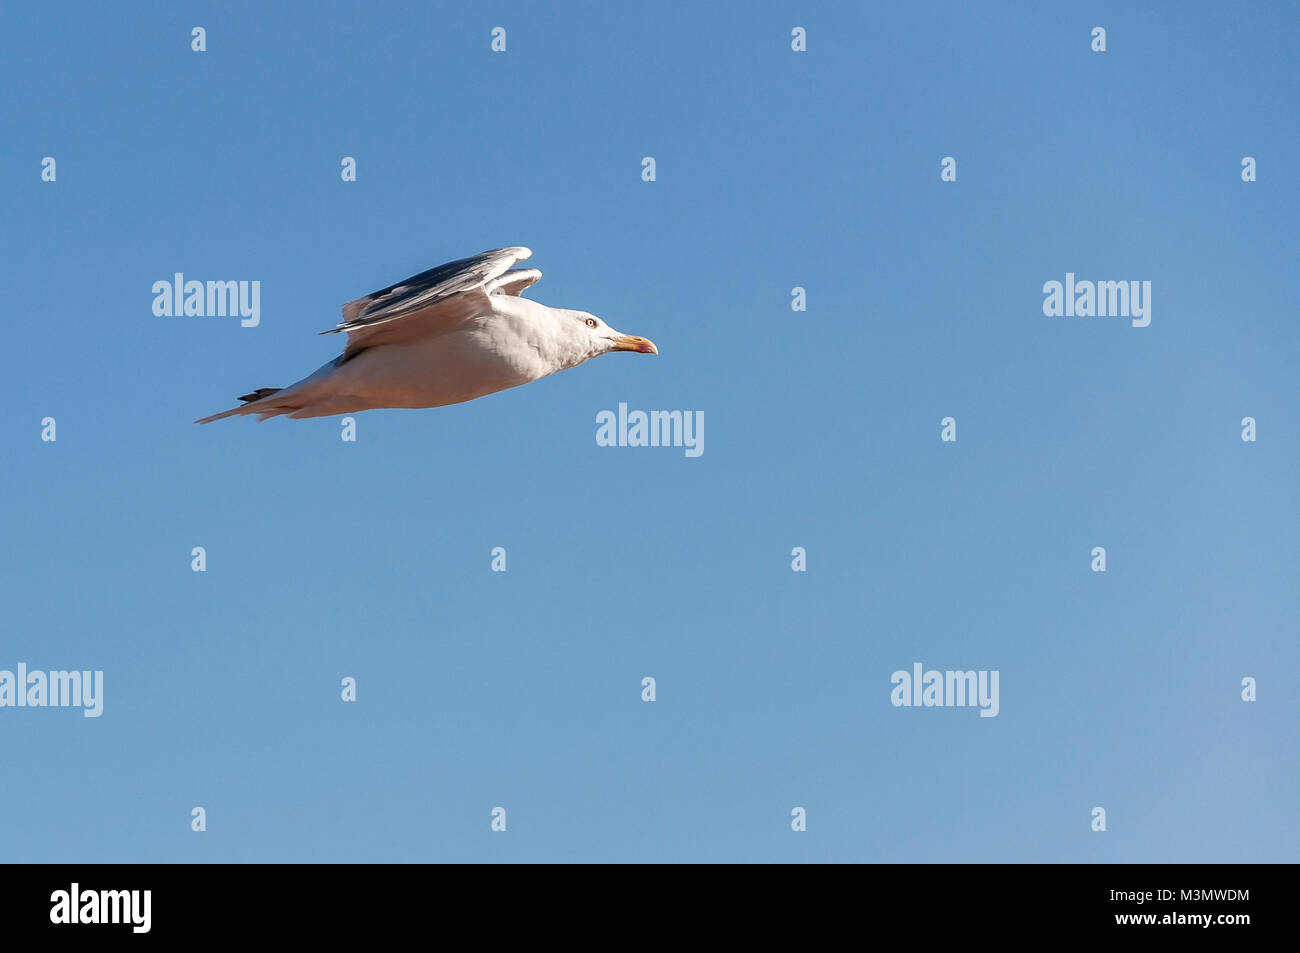 Single seagull flying against a blue sky Stock Photo